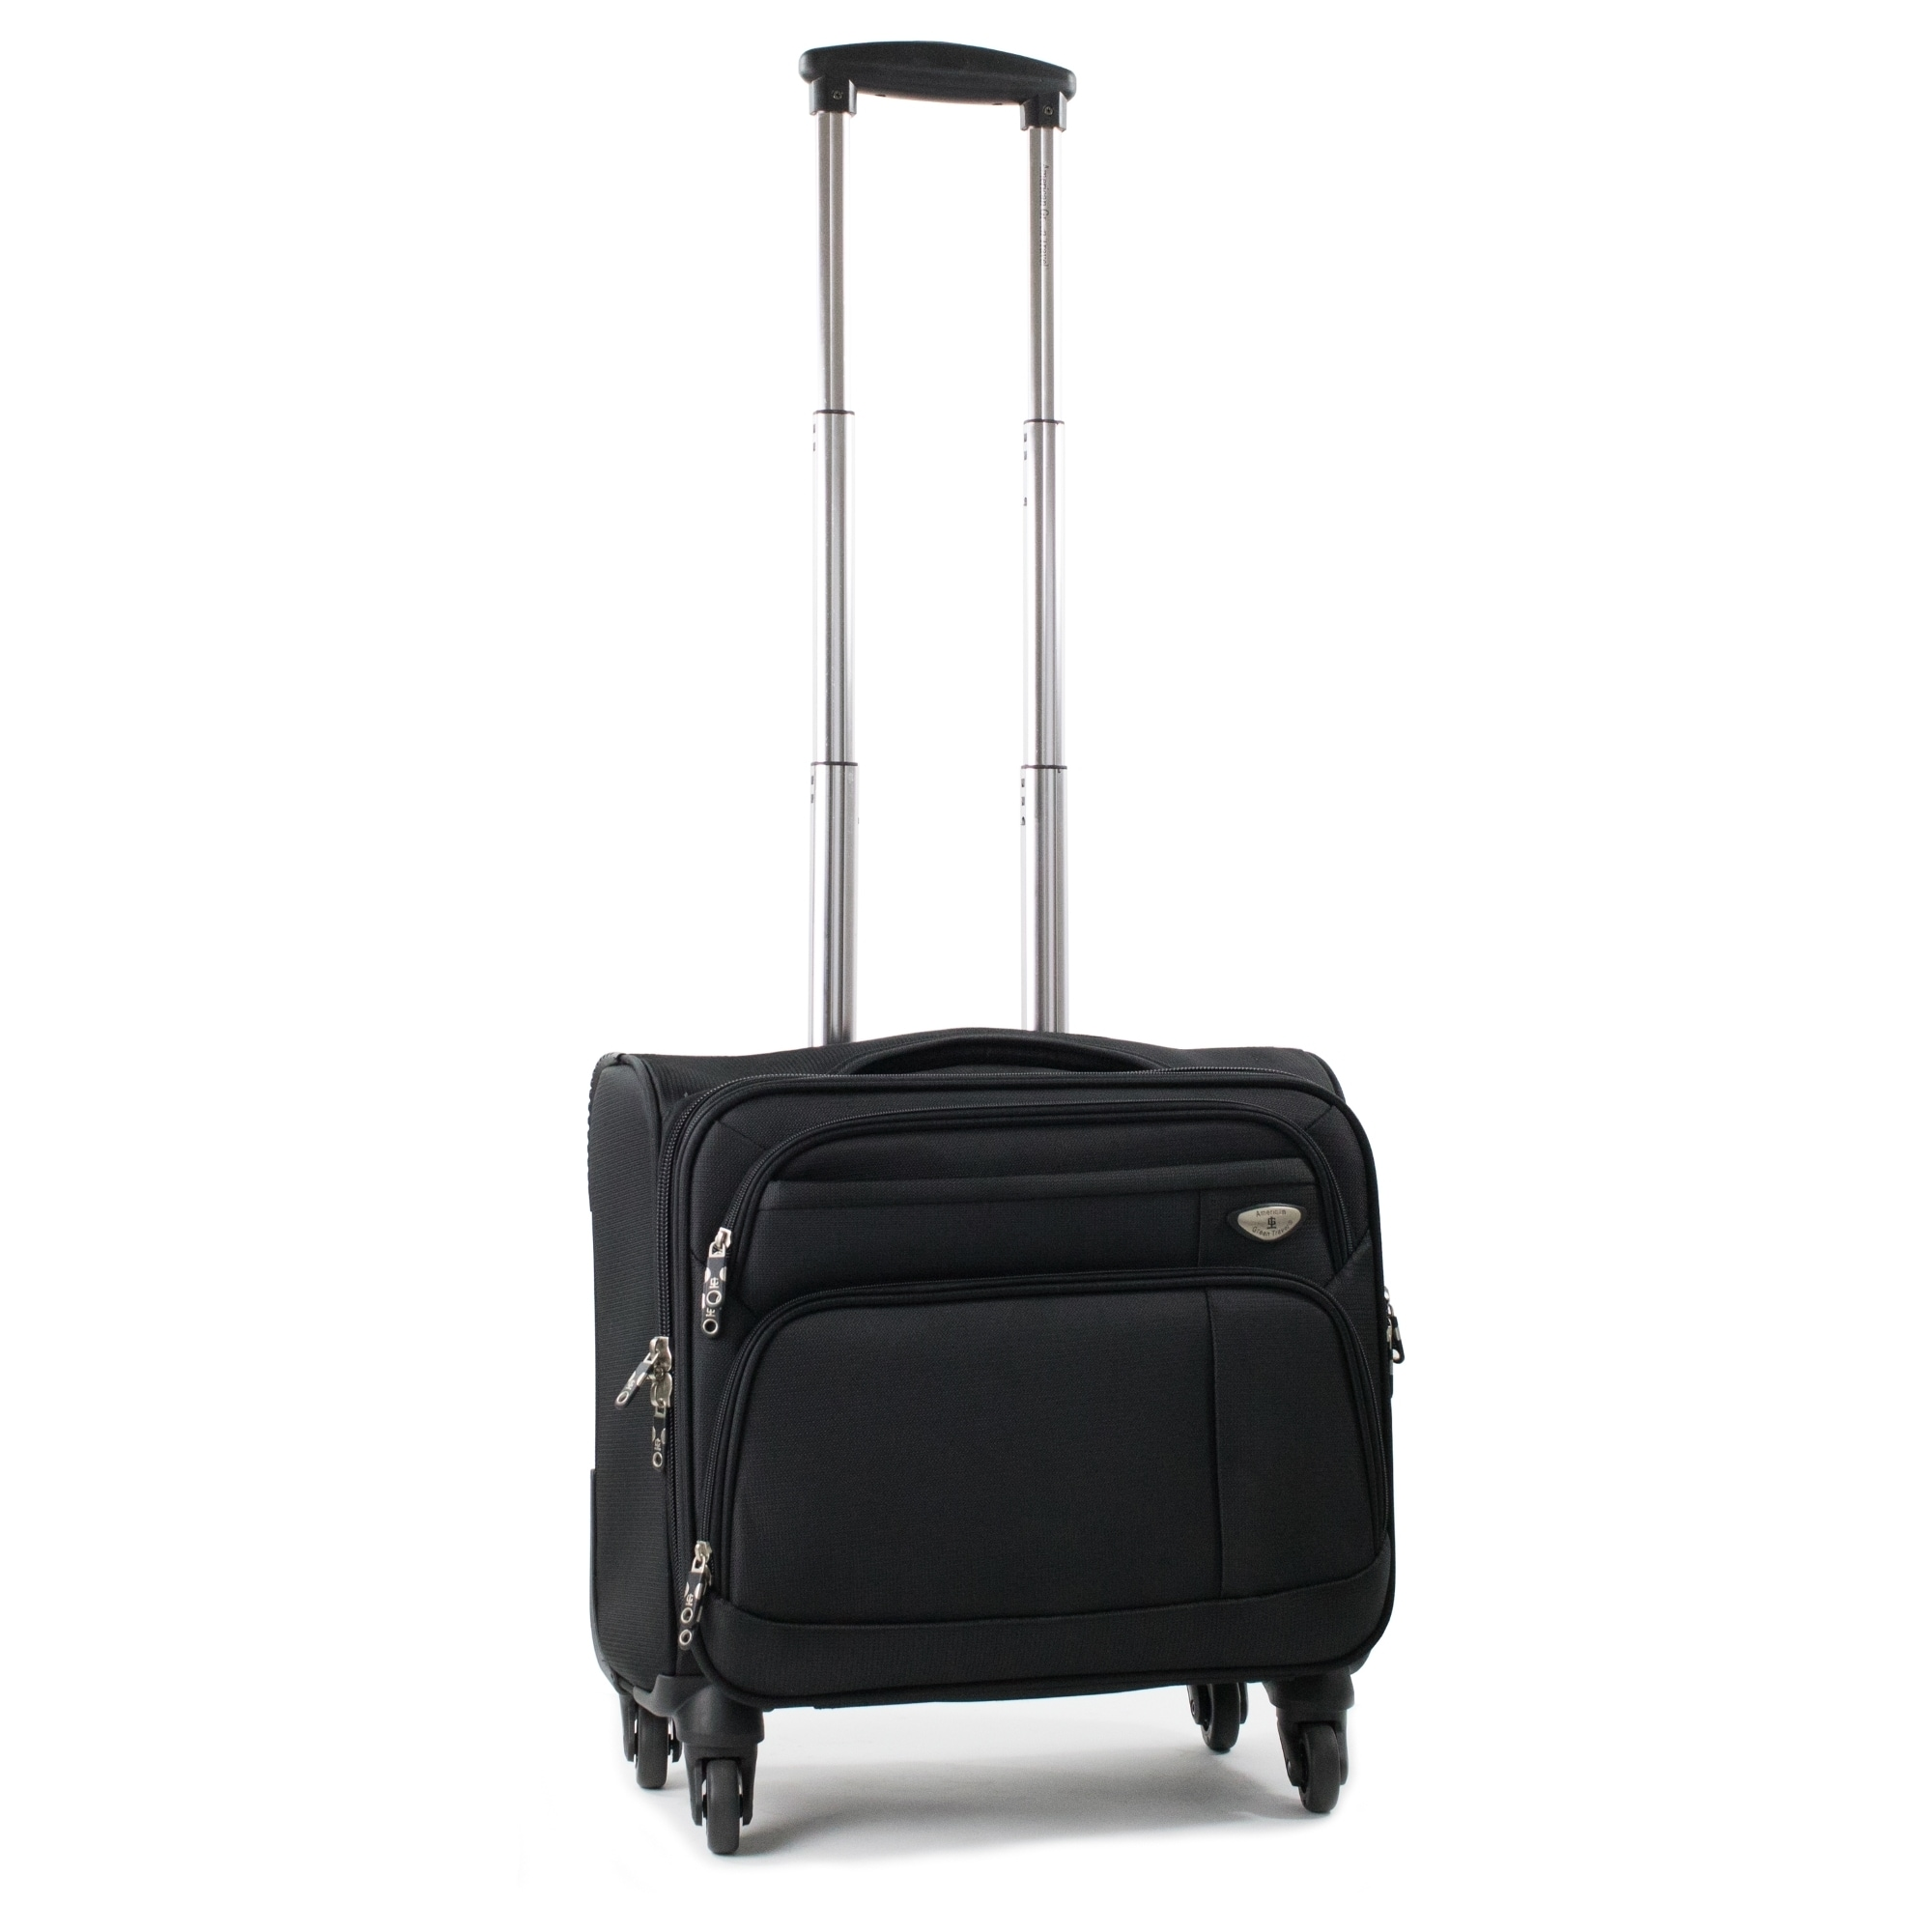 American Green Travel Carry On 17-inch Laptop